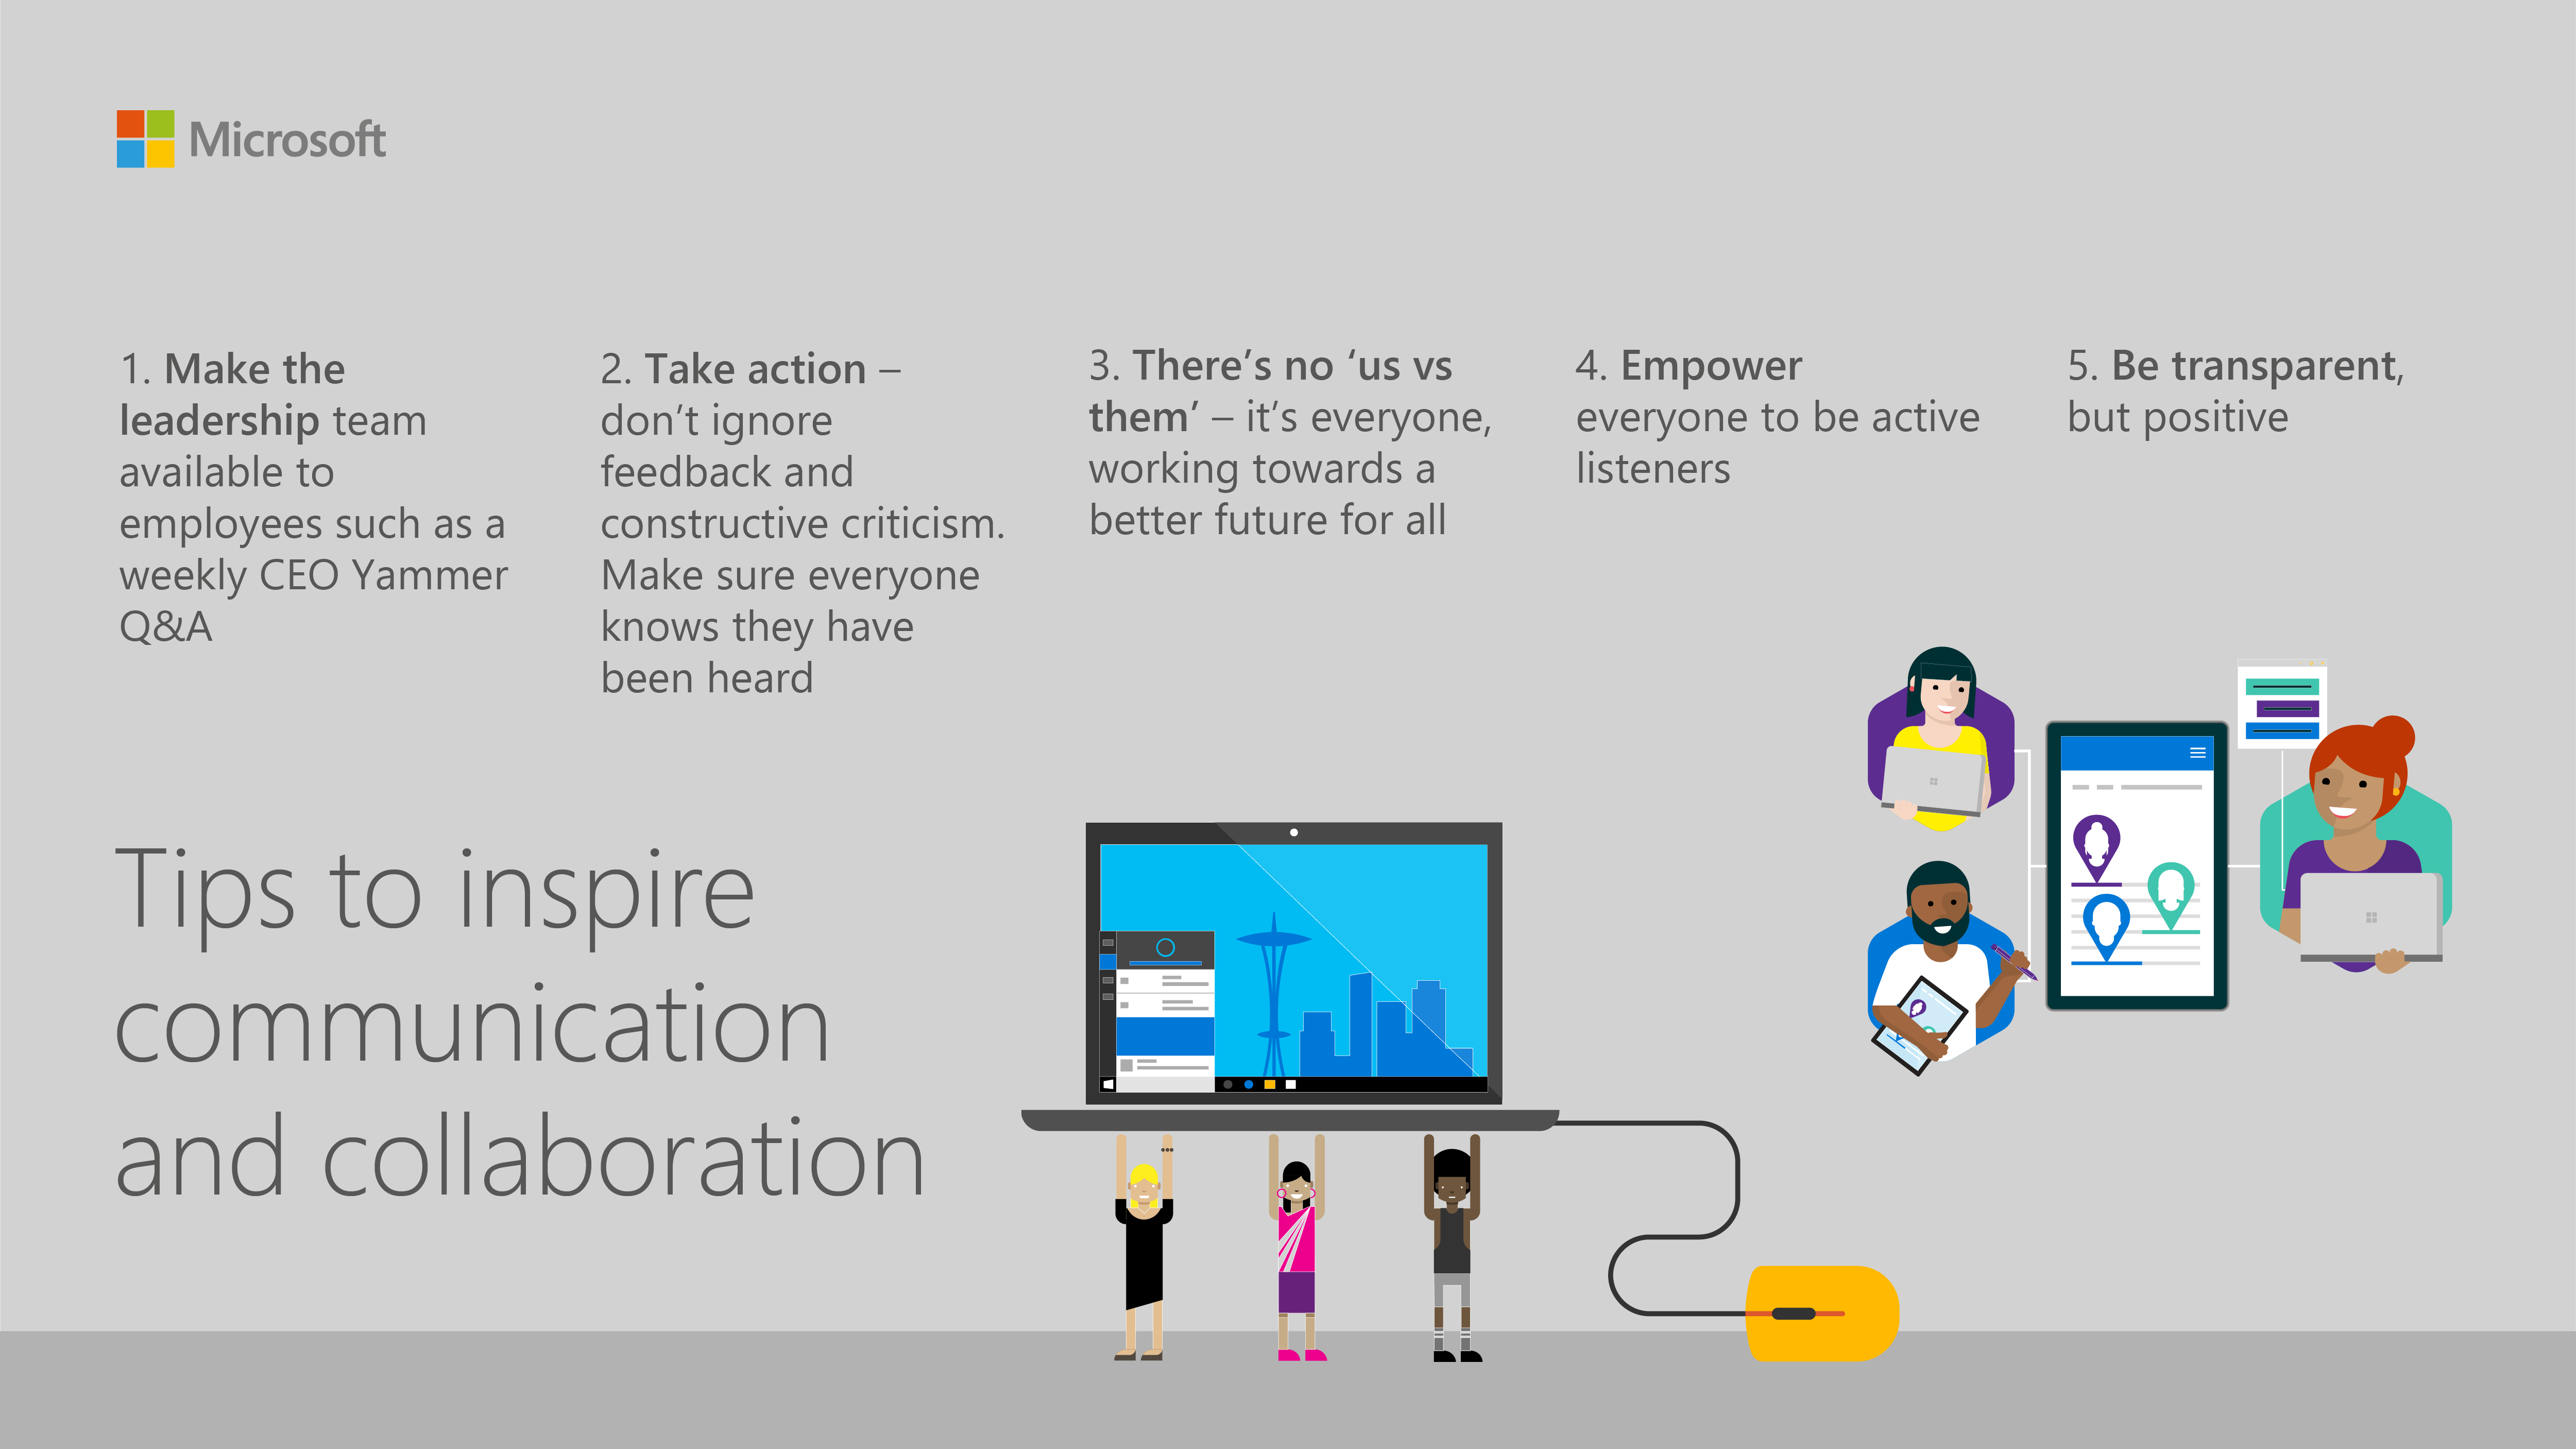 Tips to inspire collaboration and communication